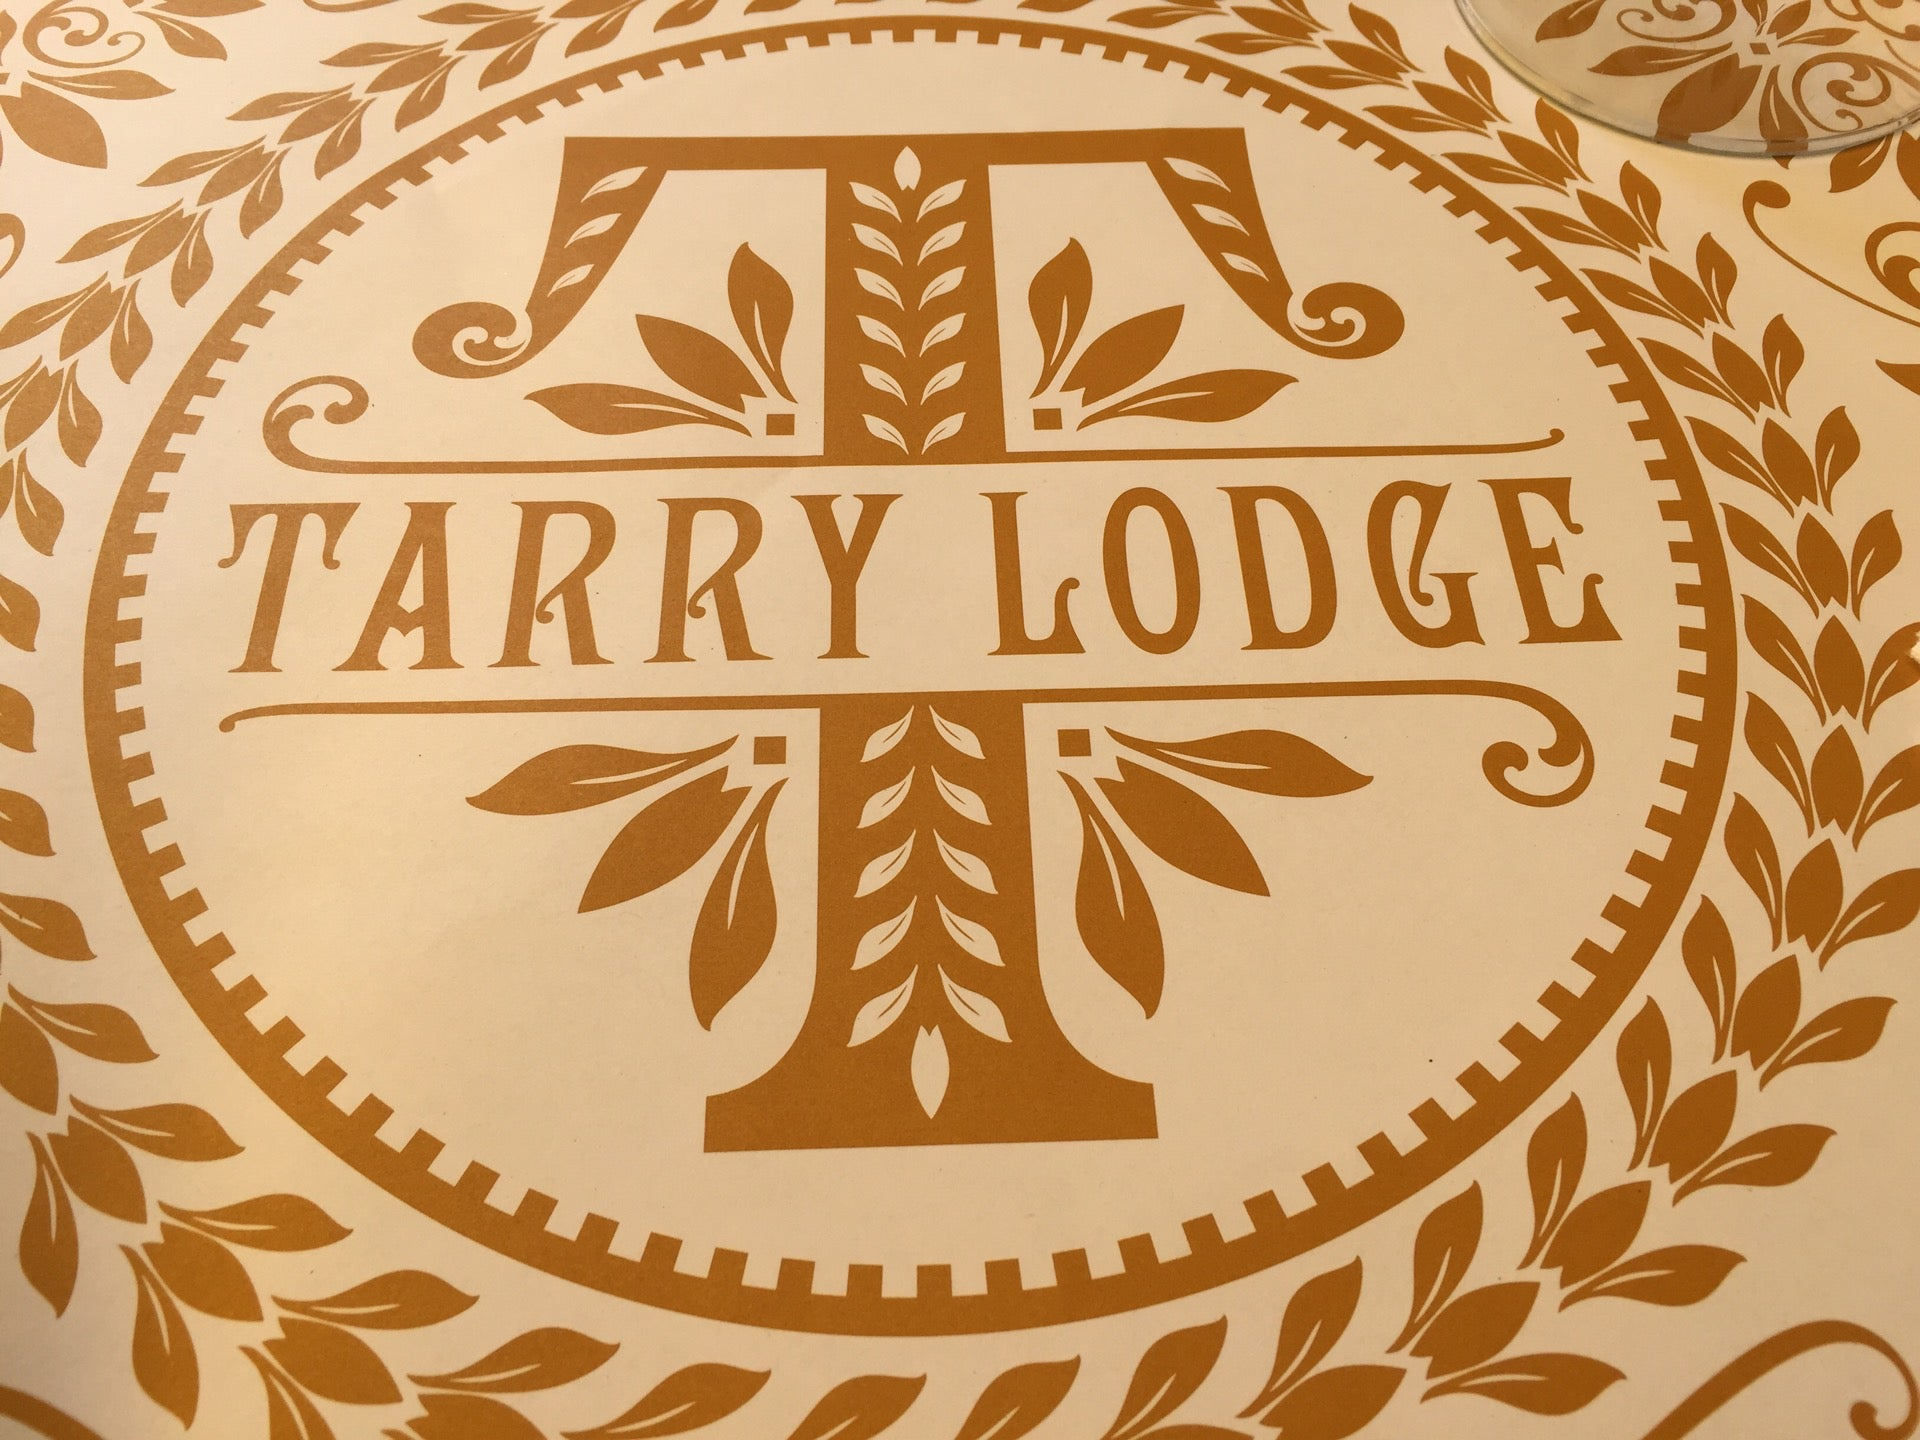 Tarry Lodge Pizza,